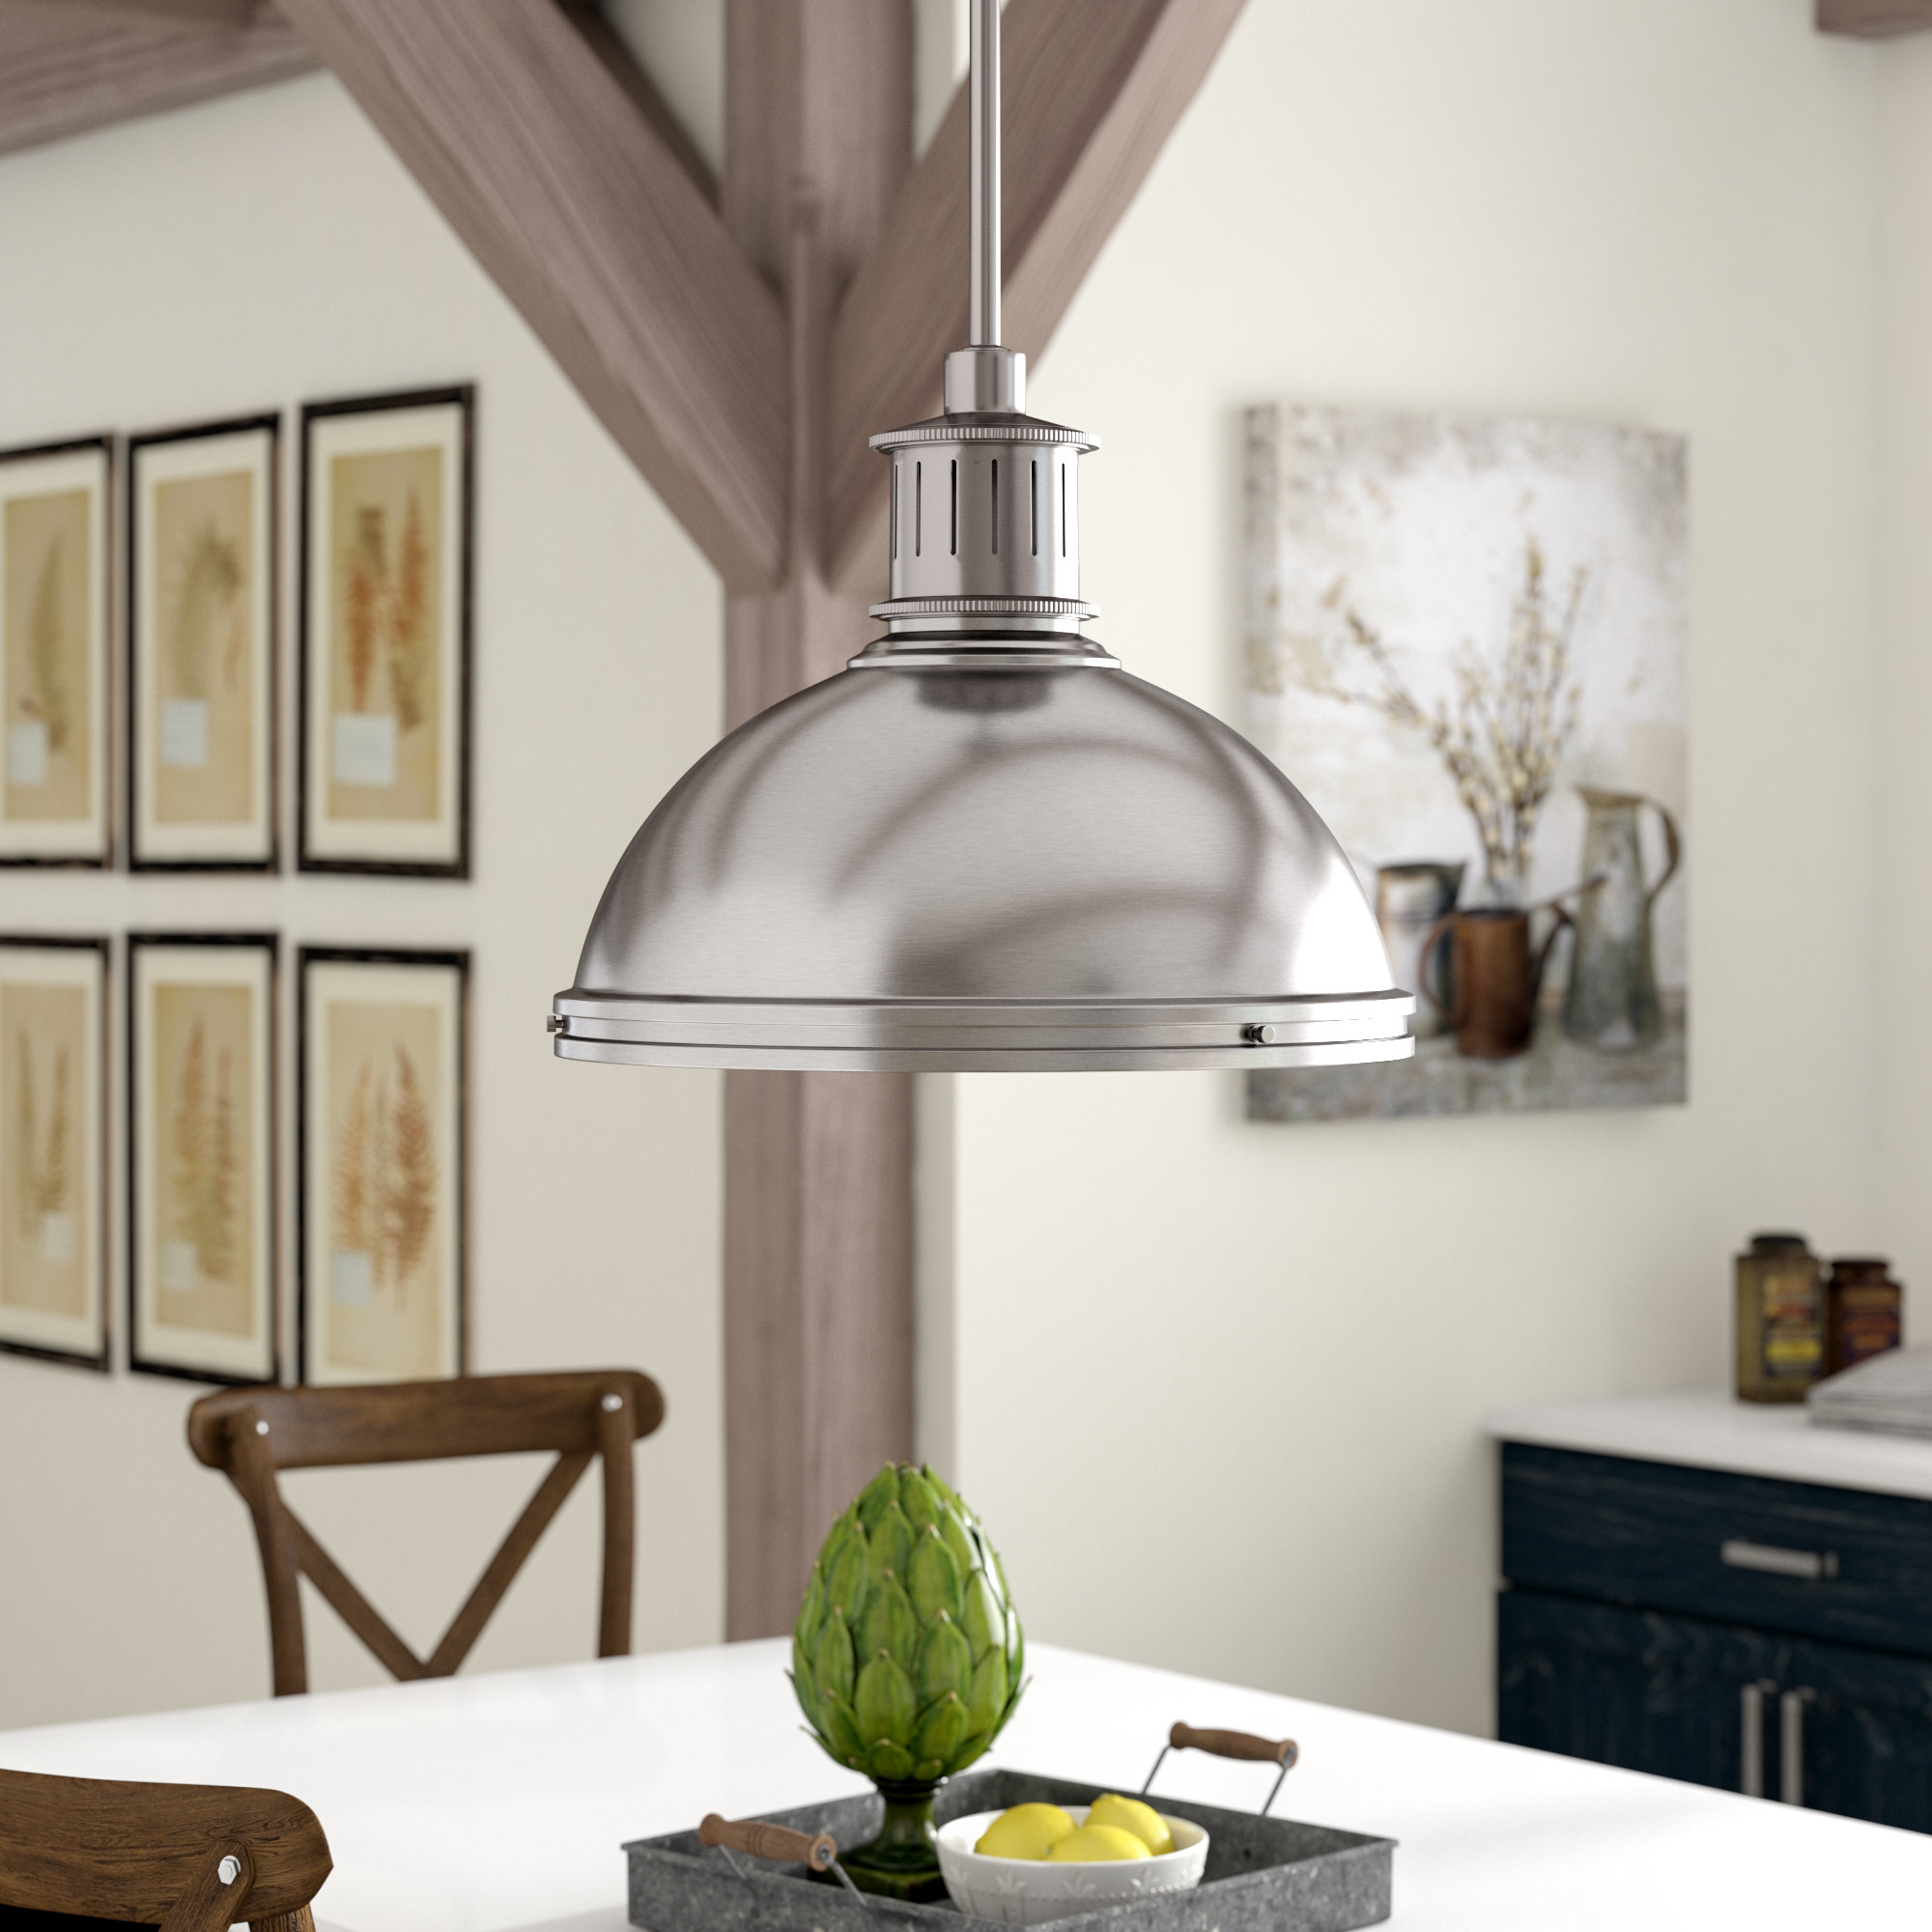 Orchard Hill 1 Light Led Single Dome Pendant Pertaining To Ninette 1 Light Dome Pendants (View 19 of 30)